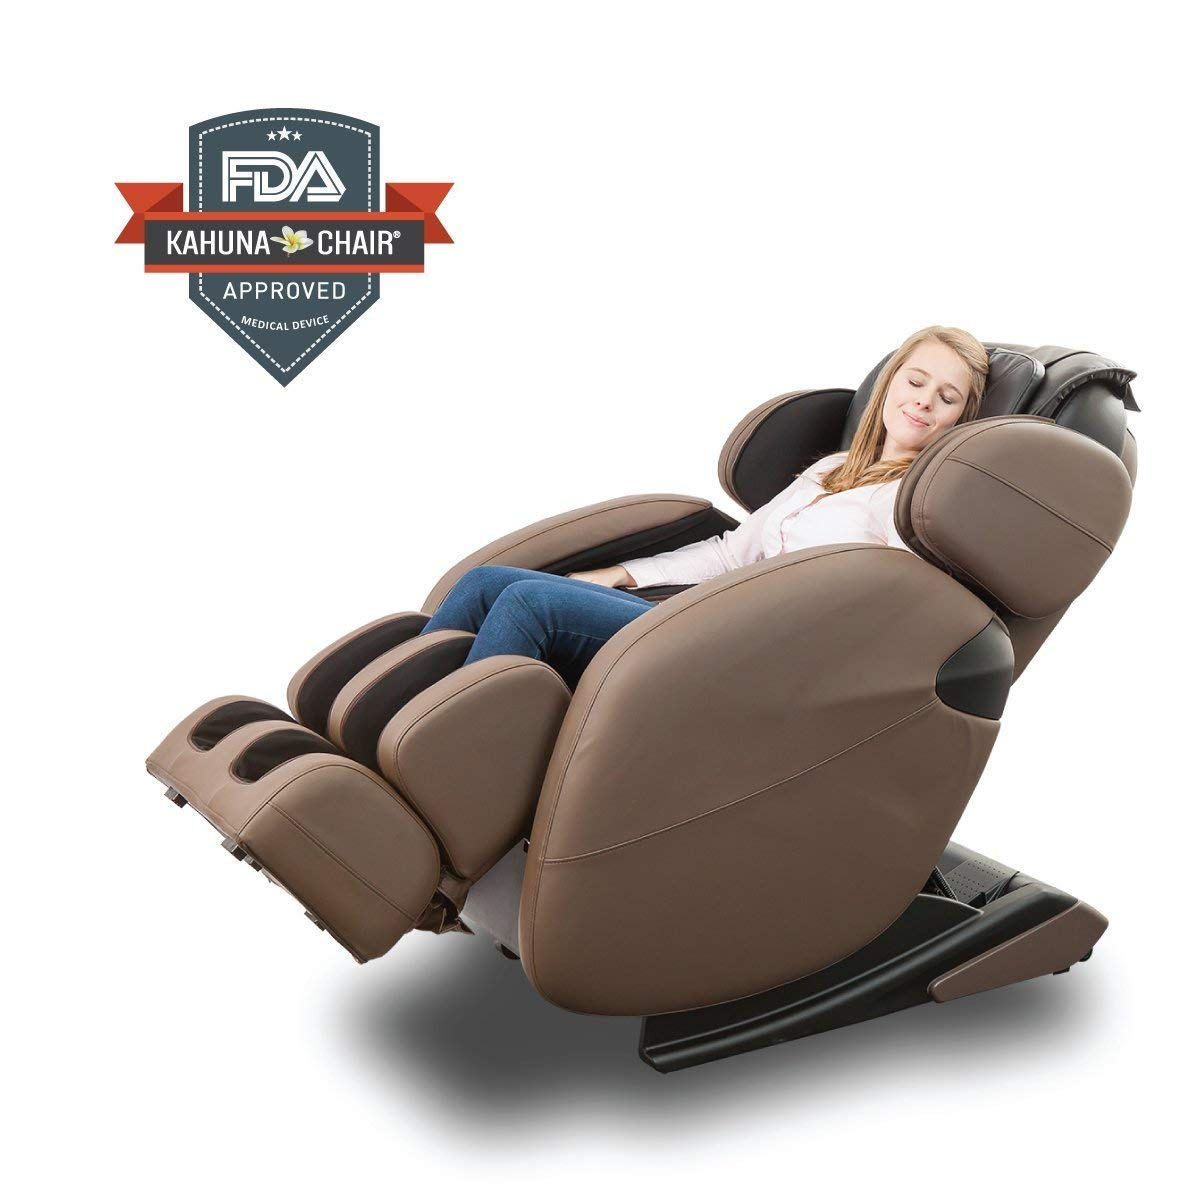 Kahuna Best Massage Chair Review by www.snoremagazine.com